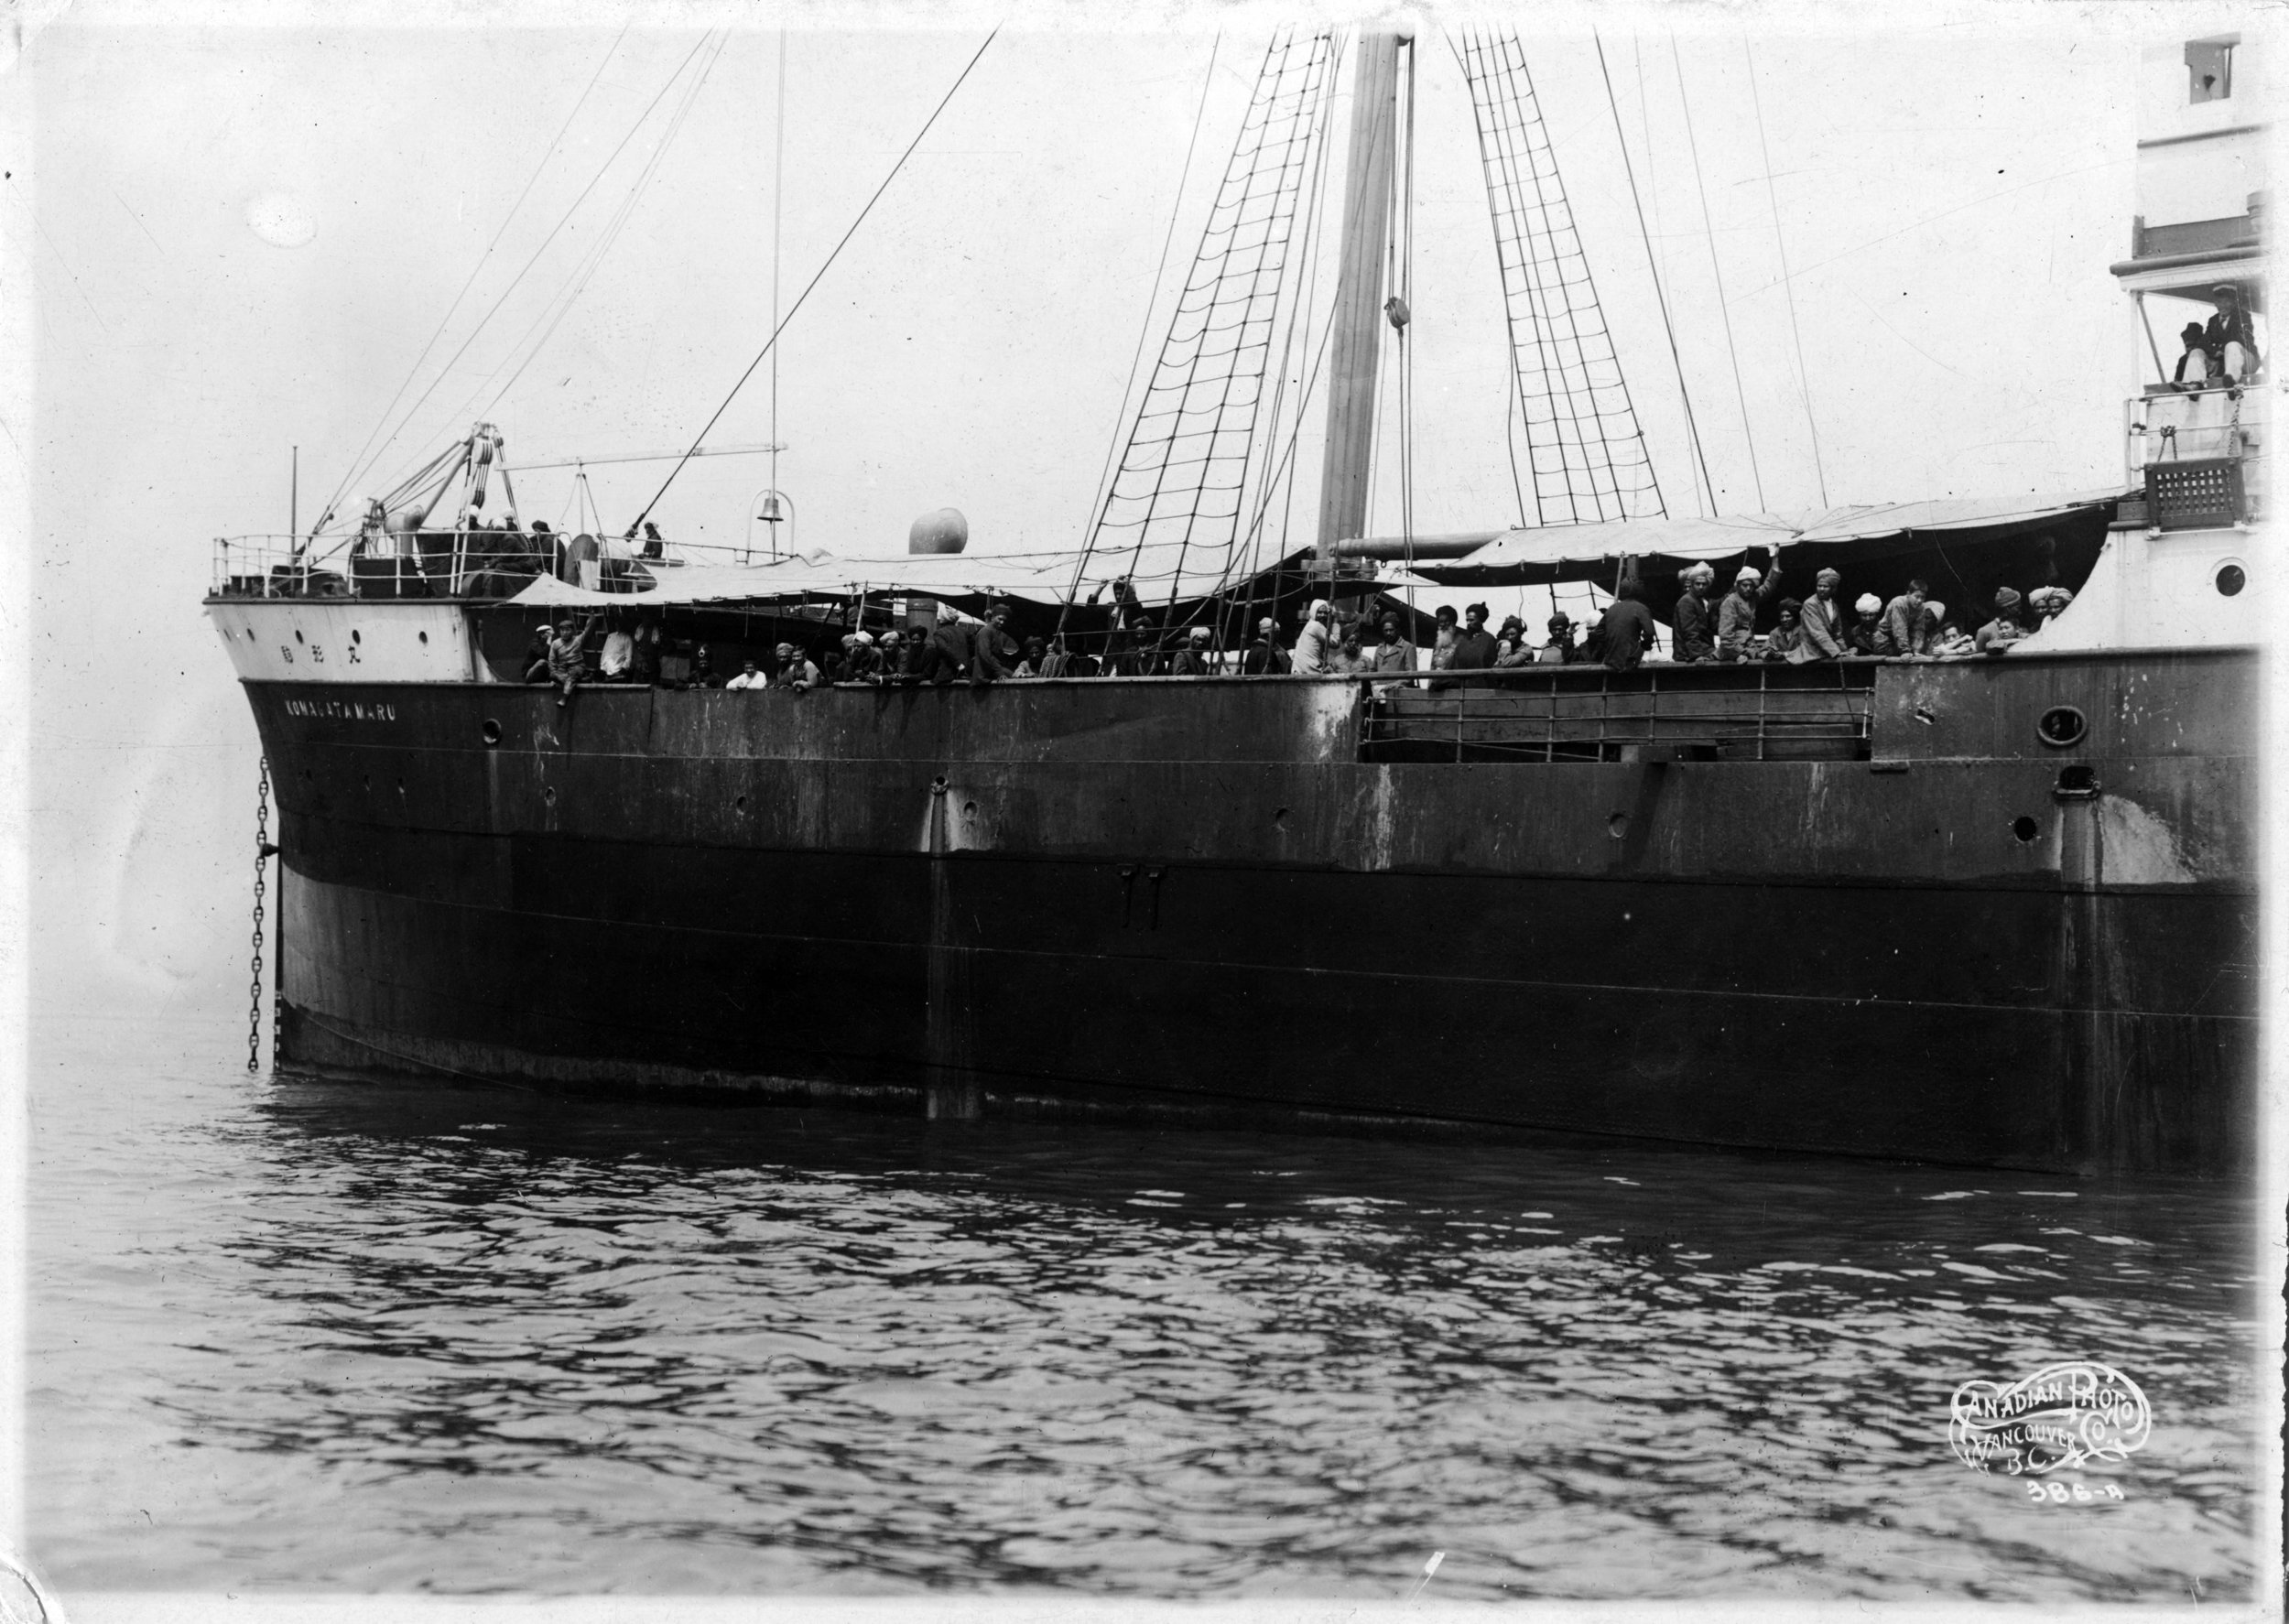 The Komagata Maru in Vancouver Harbour, 1914. Source: Vancouver Public Library